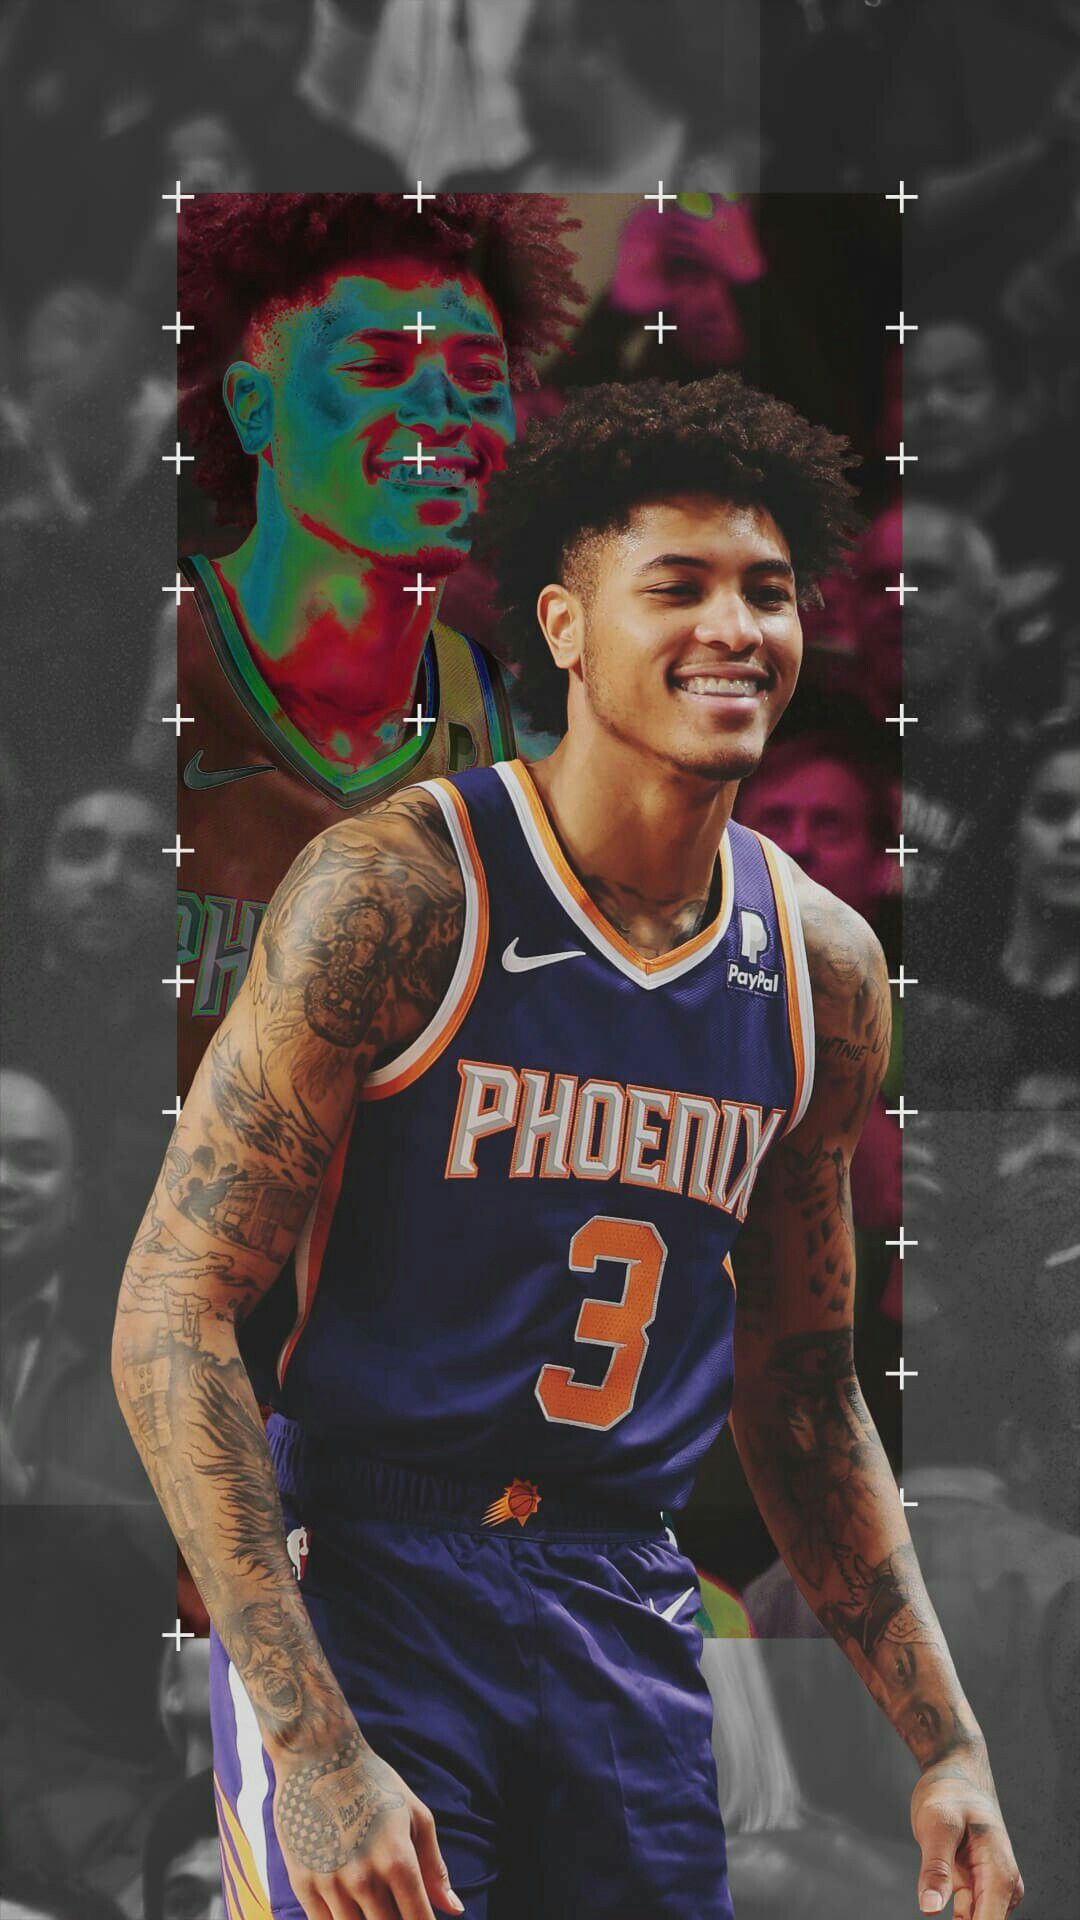 Pin By Laylaa On Nba Kelly Oubre Jr Kelly Oubre Cute Black Boys